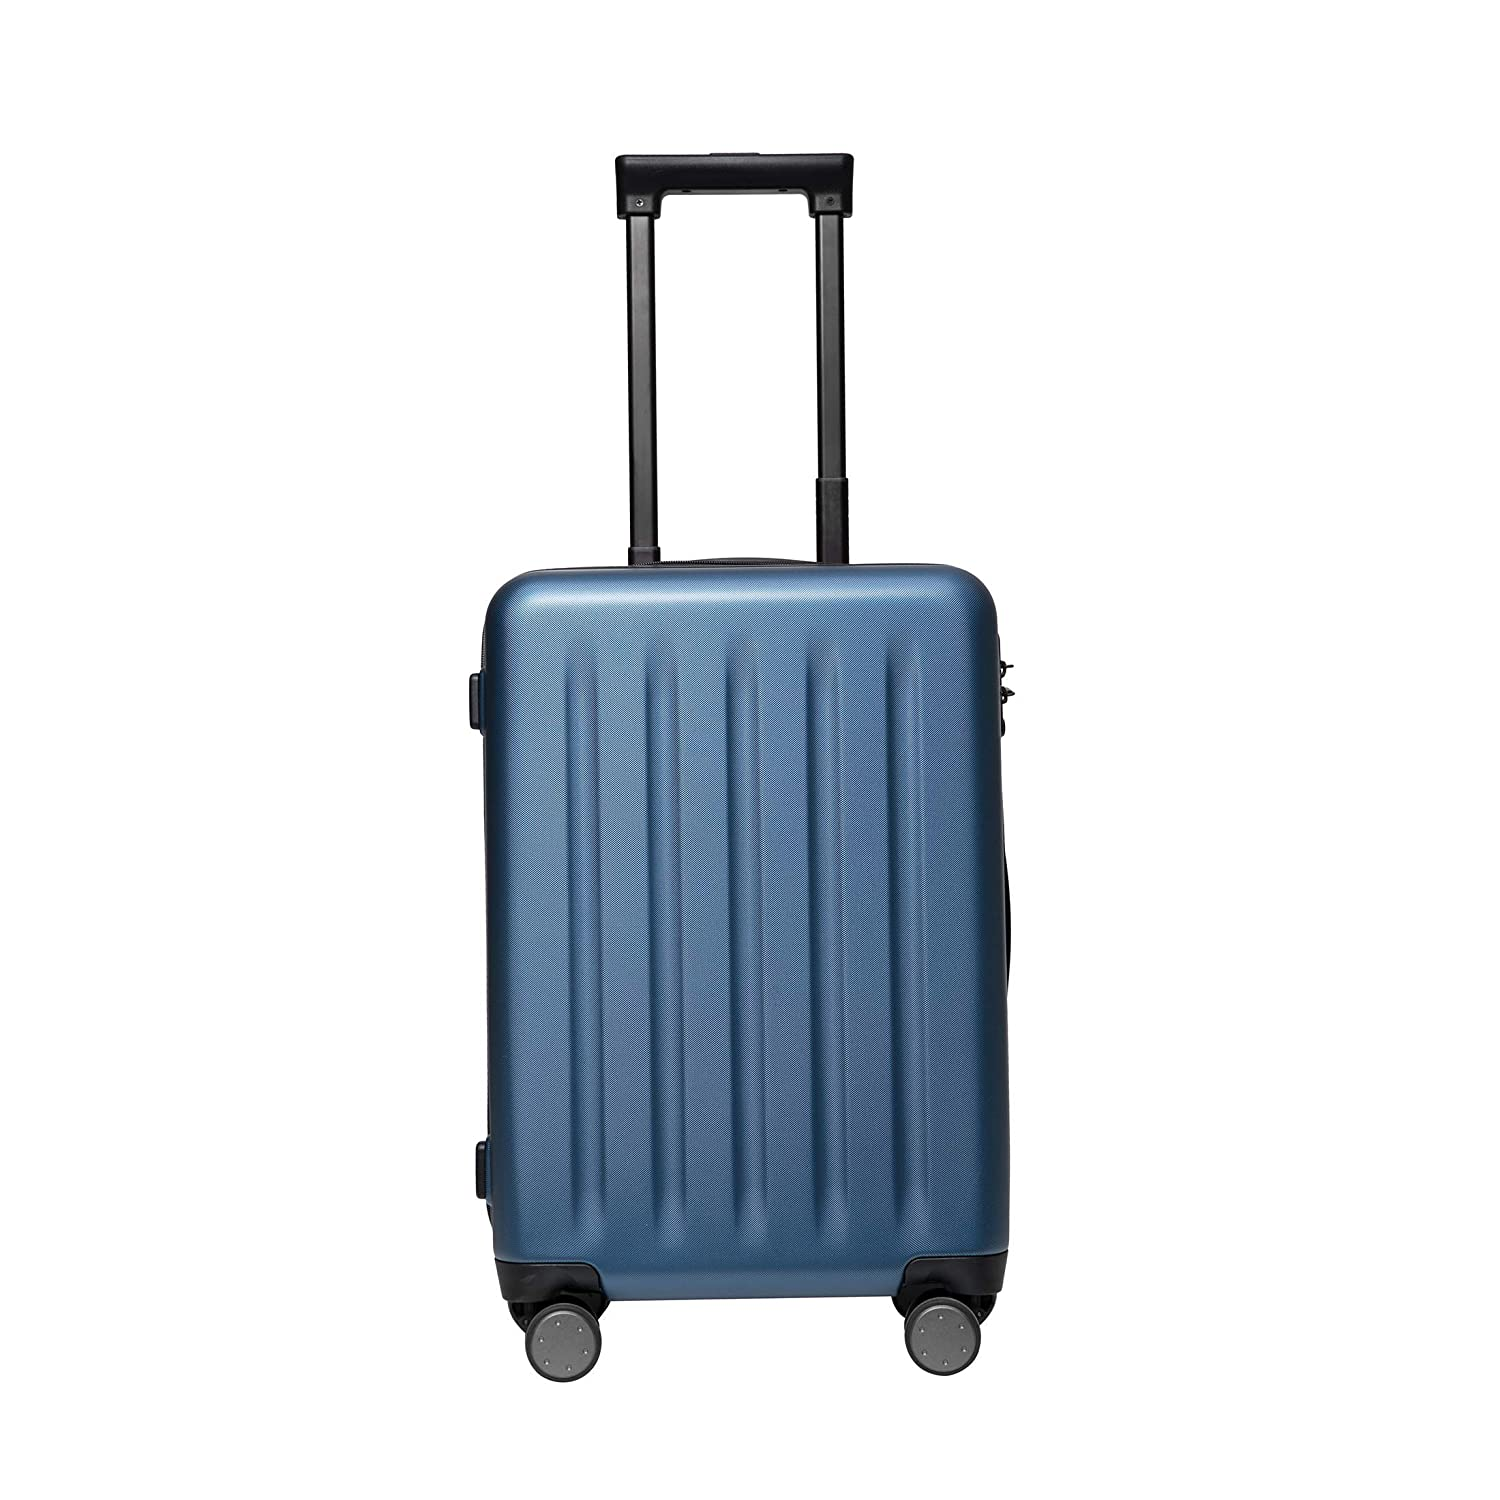 MI Polycarbonate Hardsided Cabin Luggage (Blue, 20 Inch)